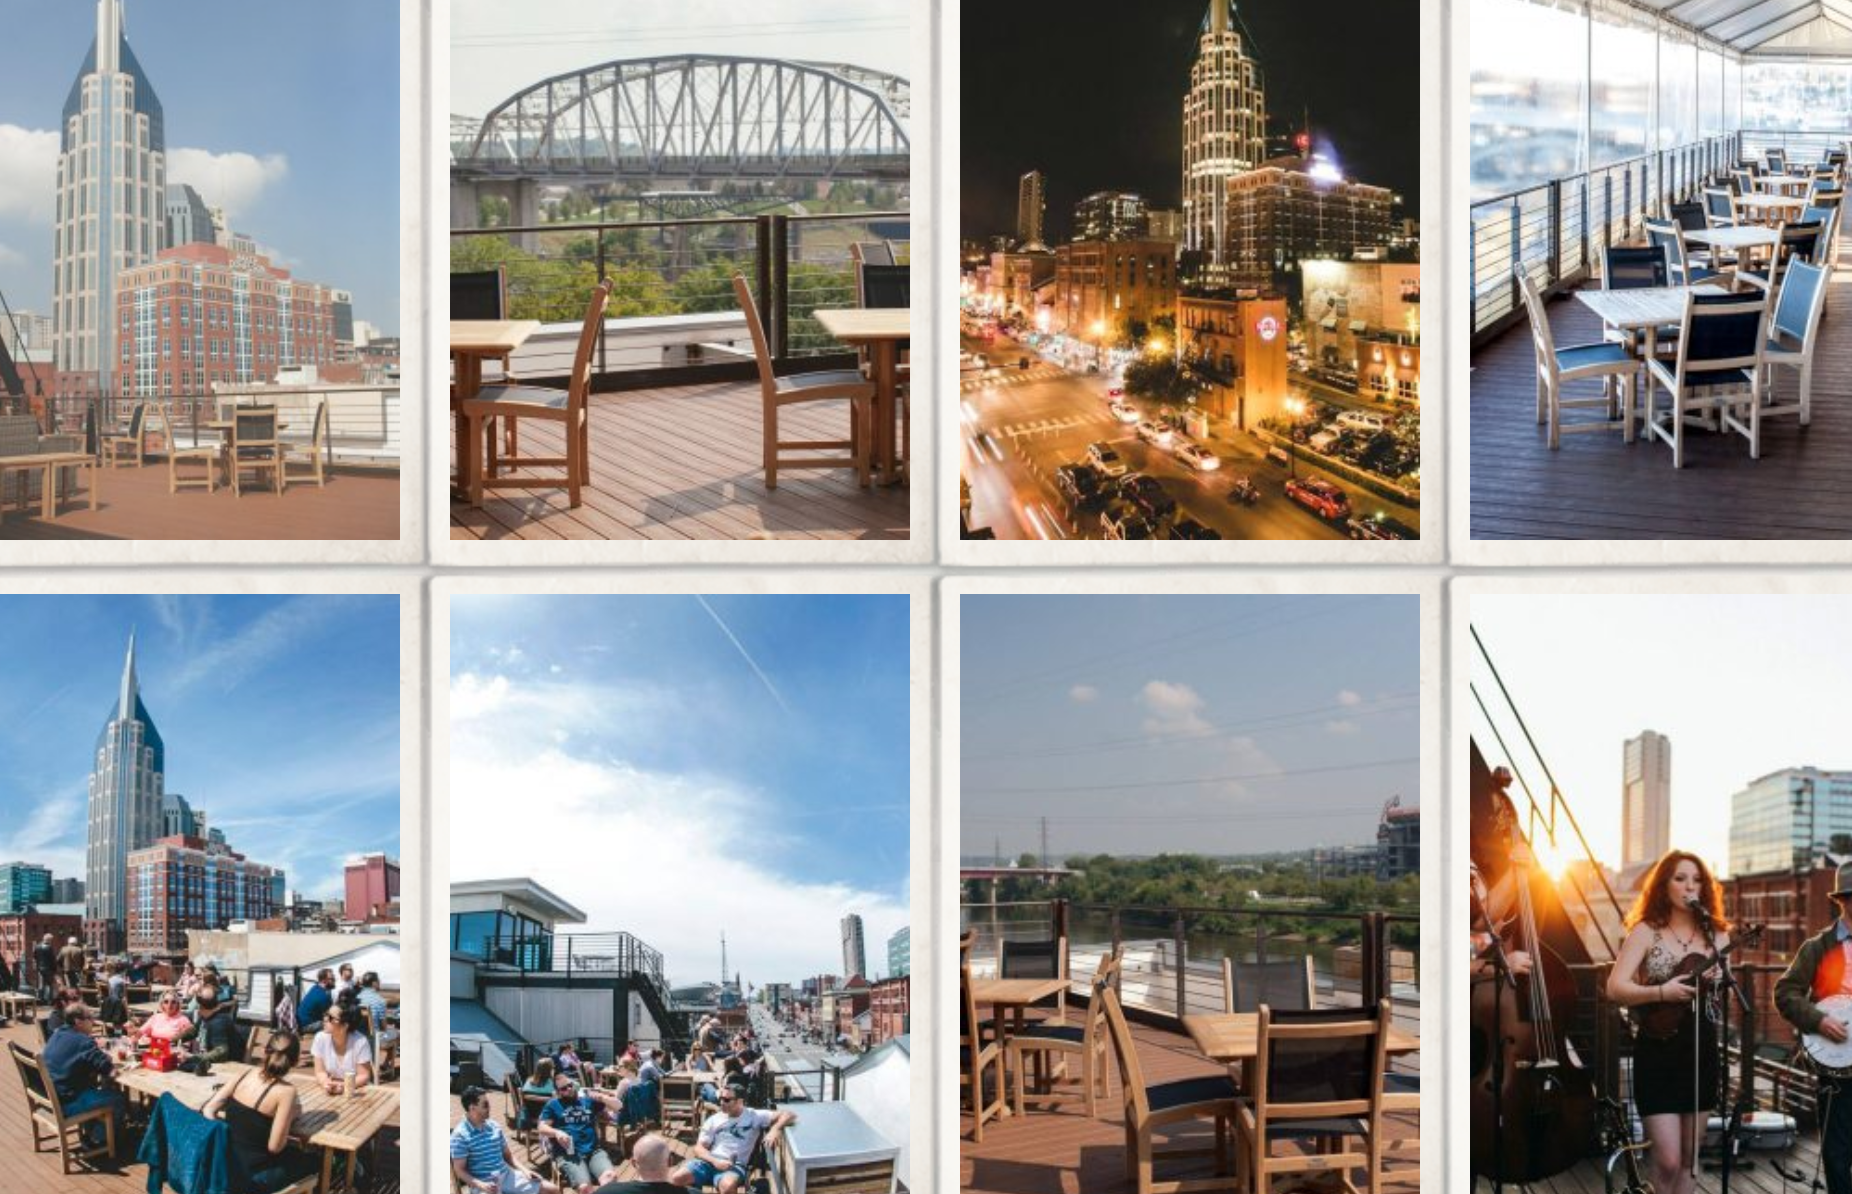 nashville rooftop bars for your nashville bachelorette party